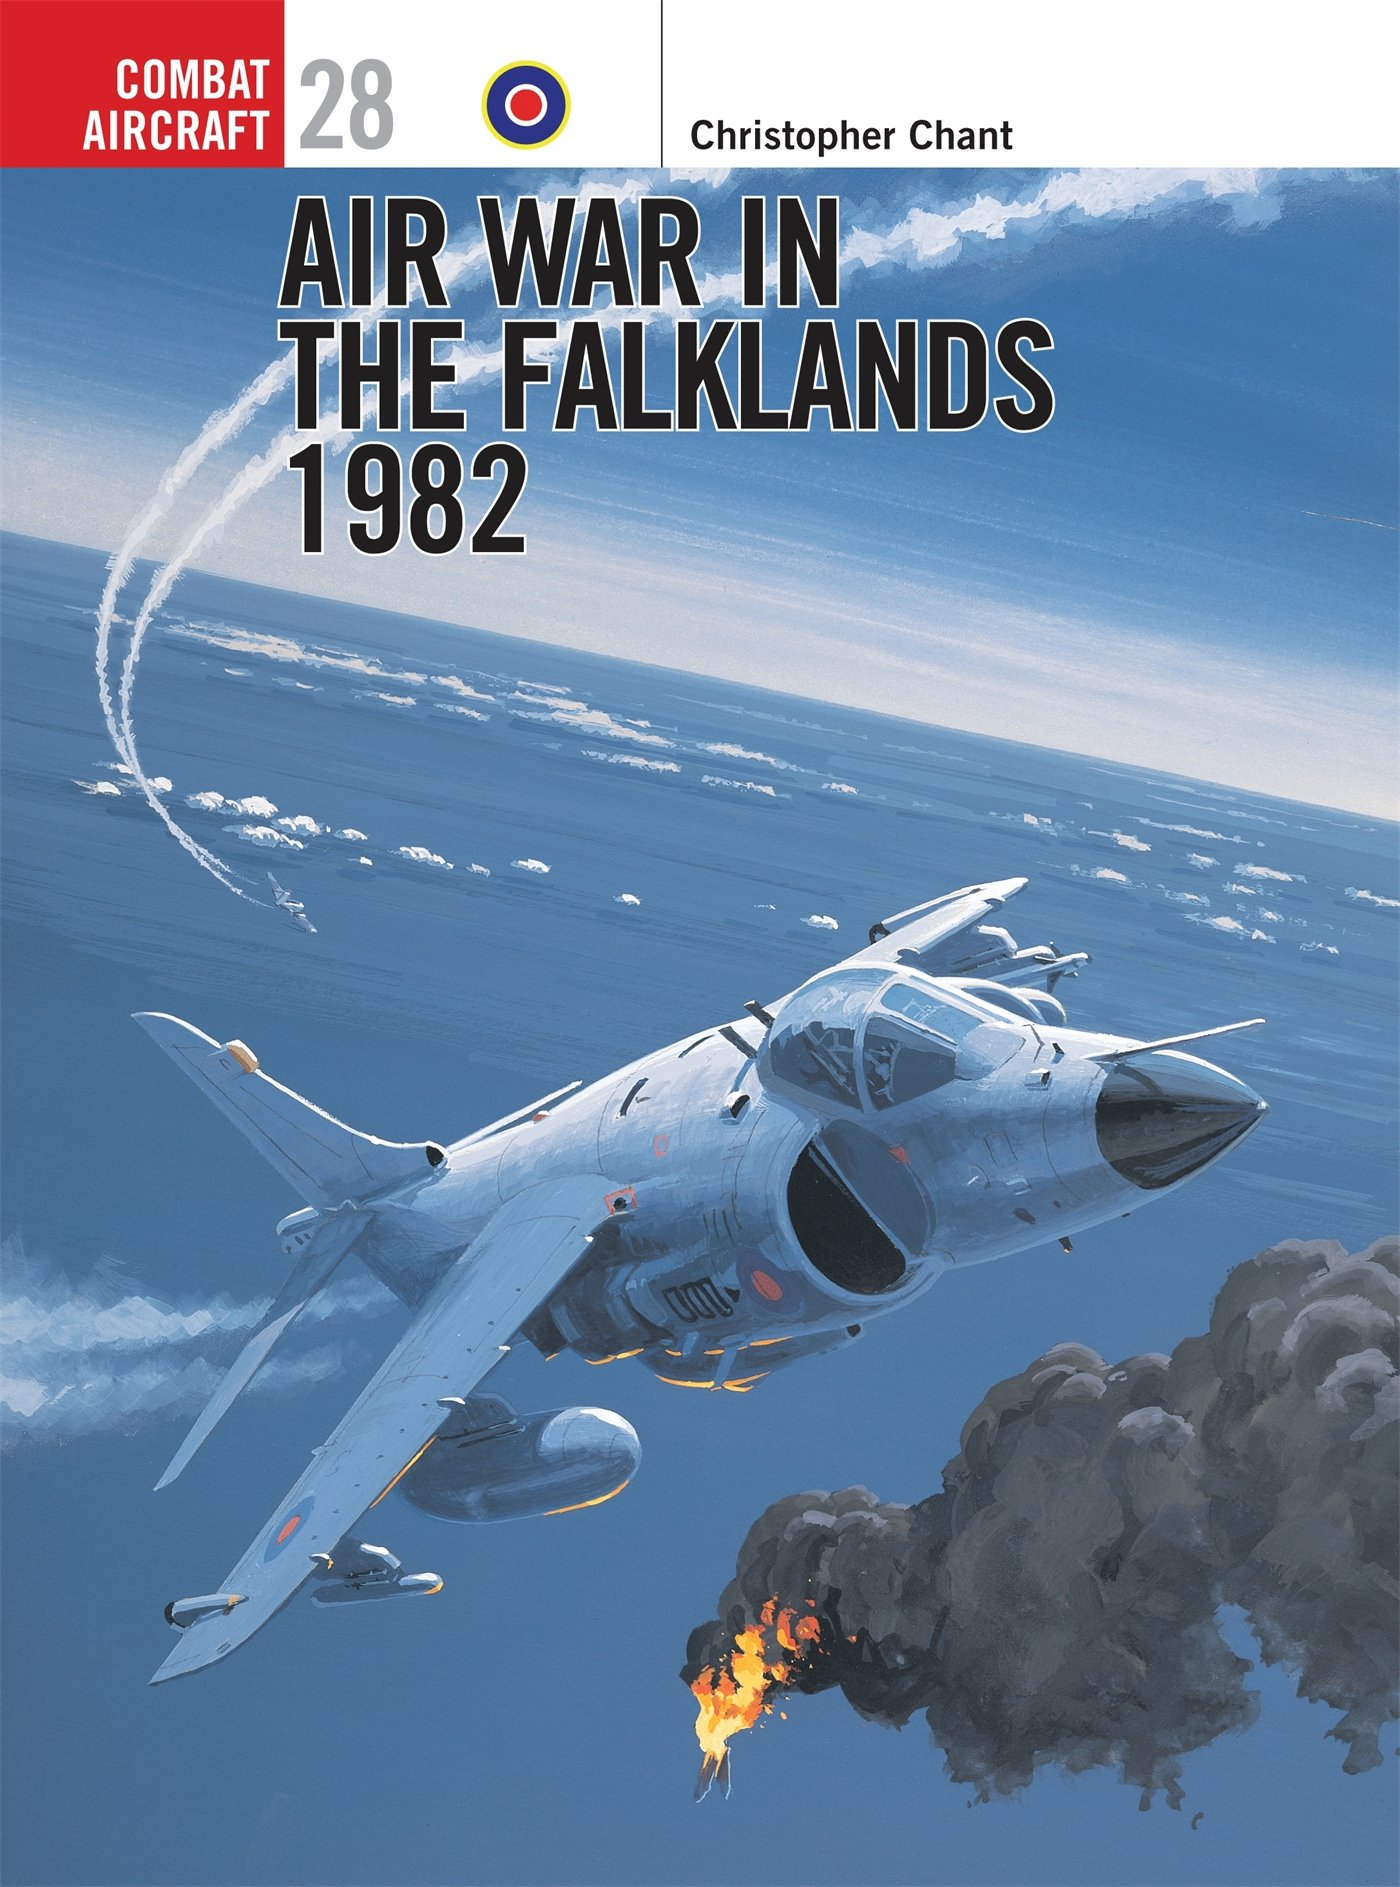 Air War in the Falklands 1982 (Osprey Combat Aircraft 28